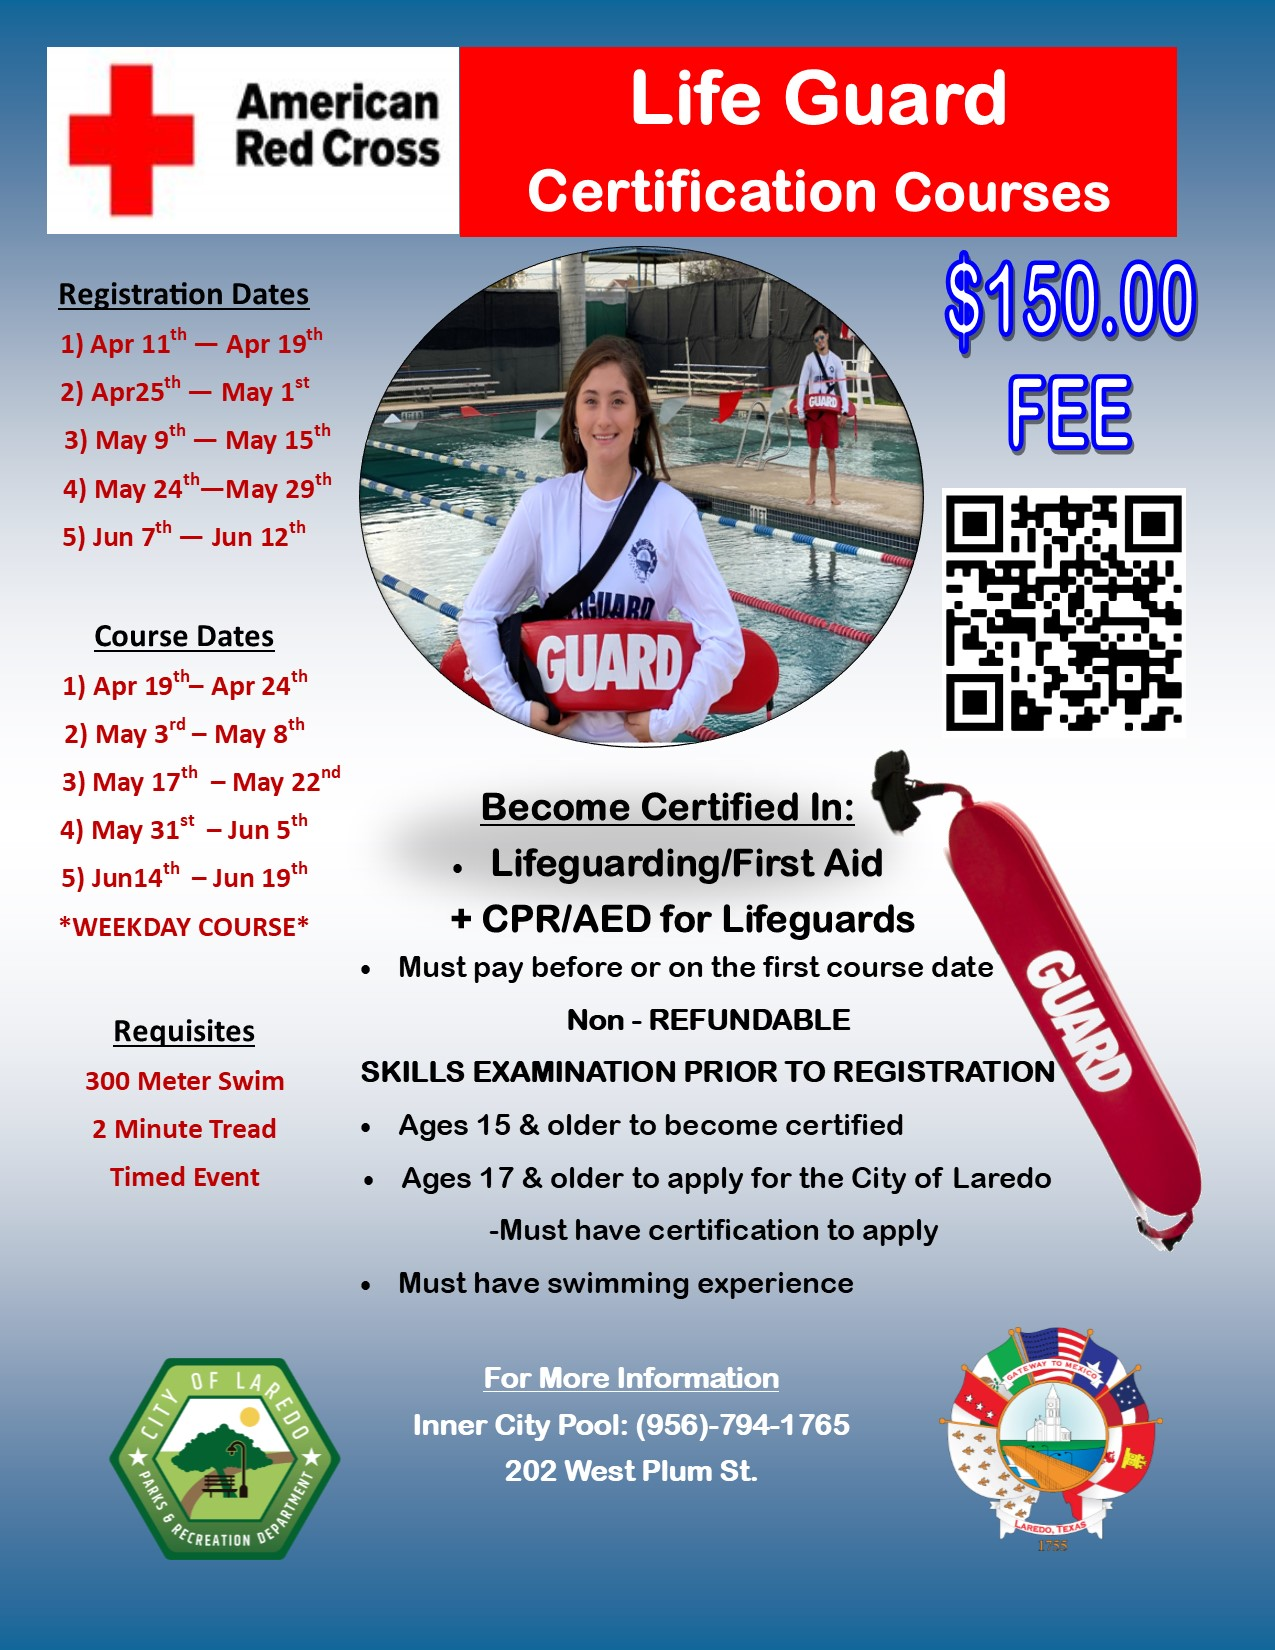 Life Guard Certification Courses